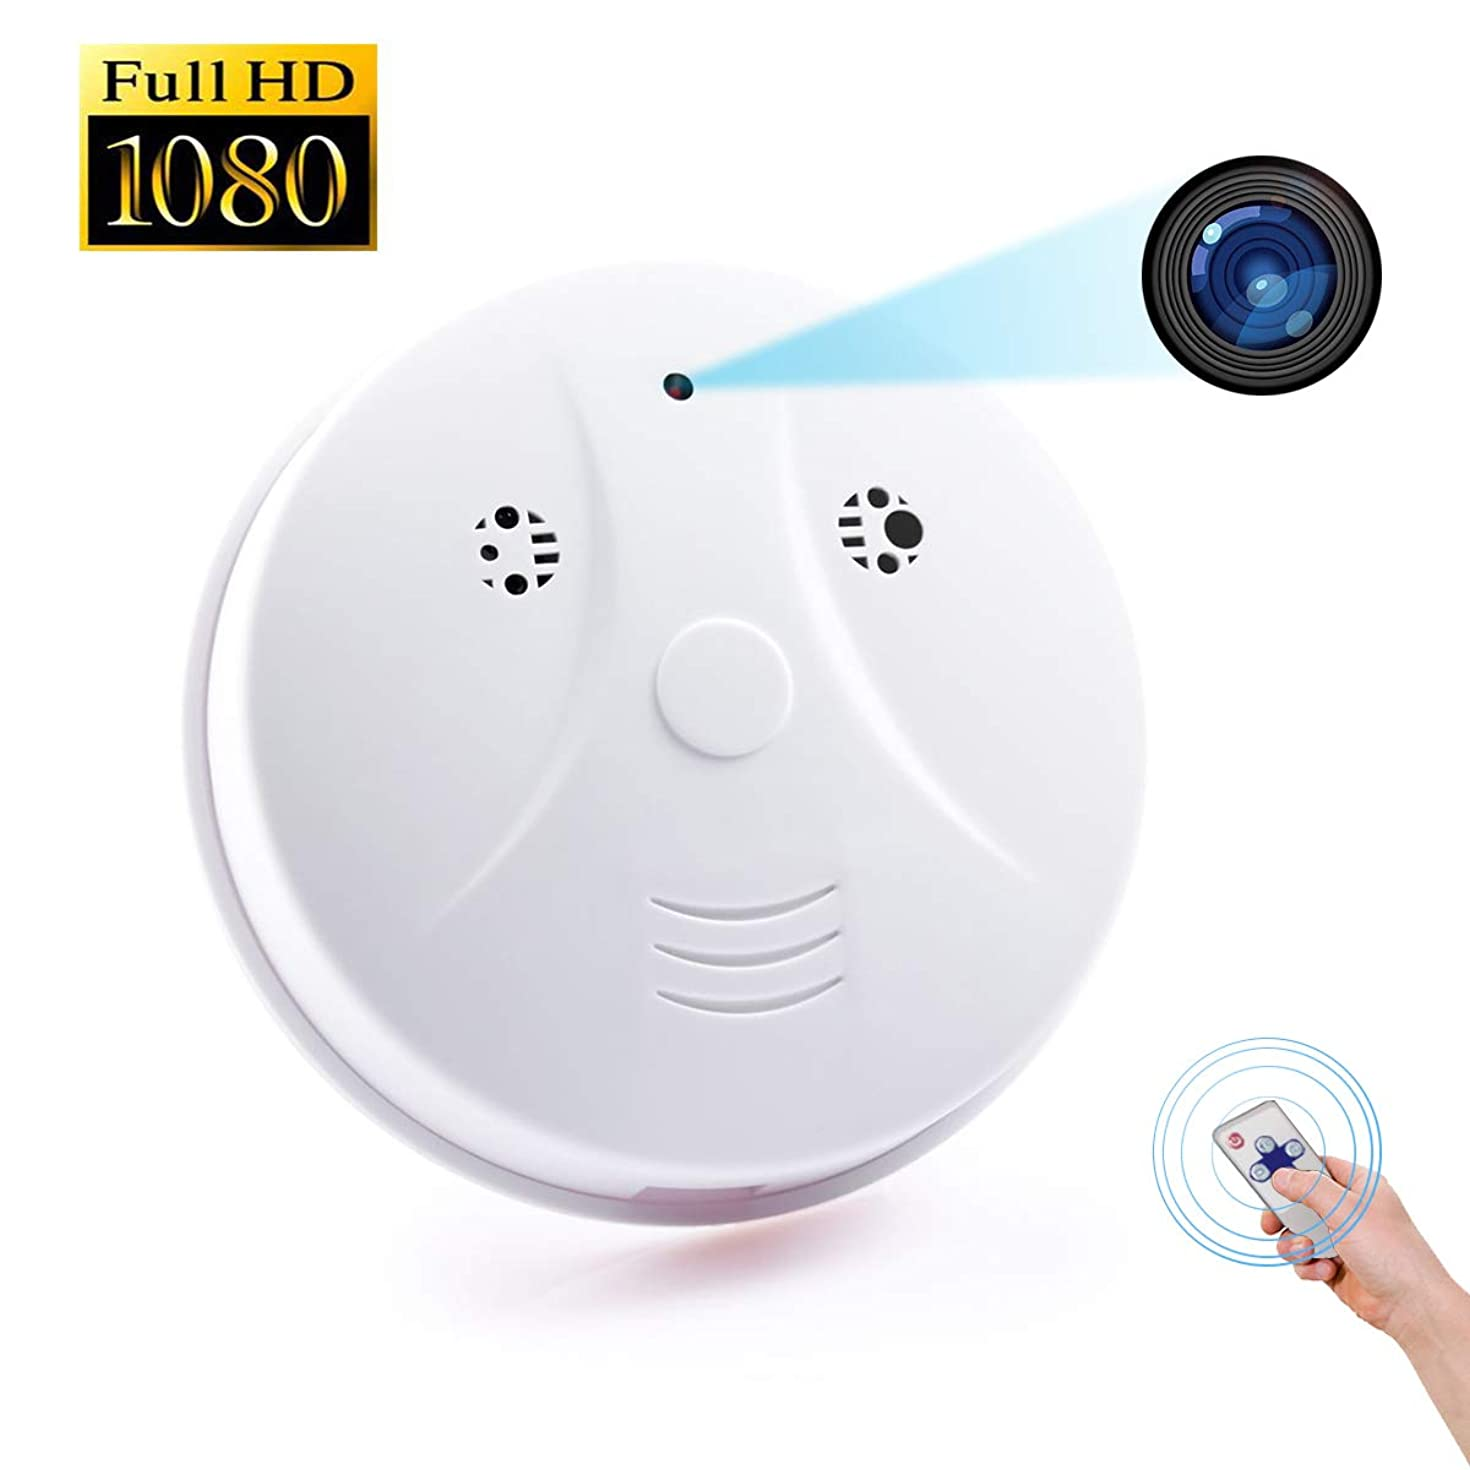 Littleadd Hidden Camera Detector [2019 Upgraded]-1080P HD Spy Camera Motion Activated Video Recording Remote Control Security Camera Nanny Cam